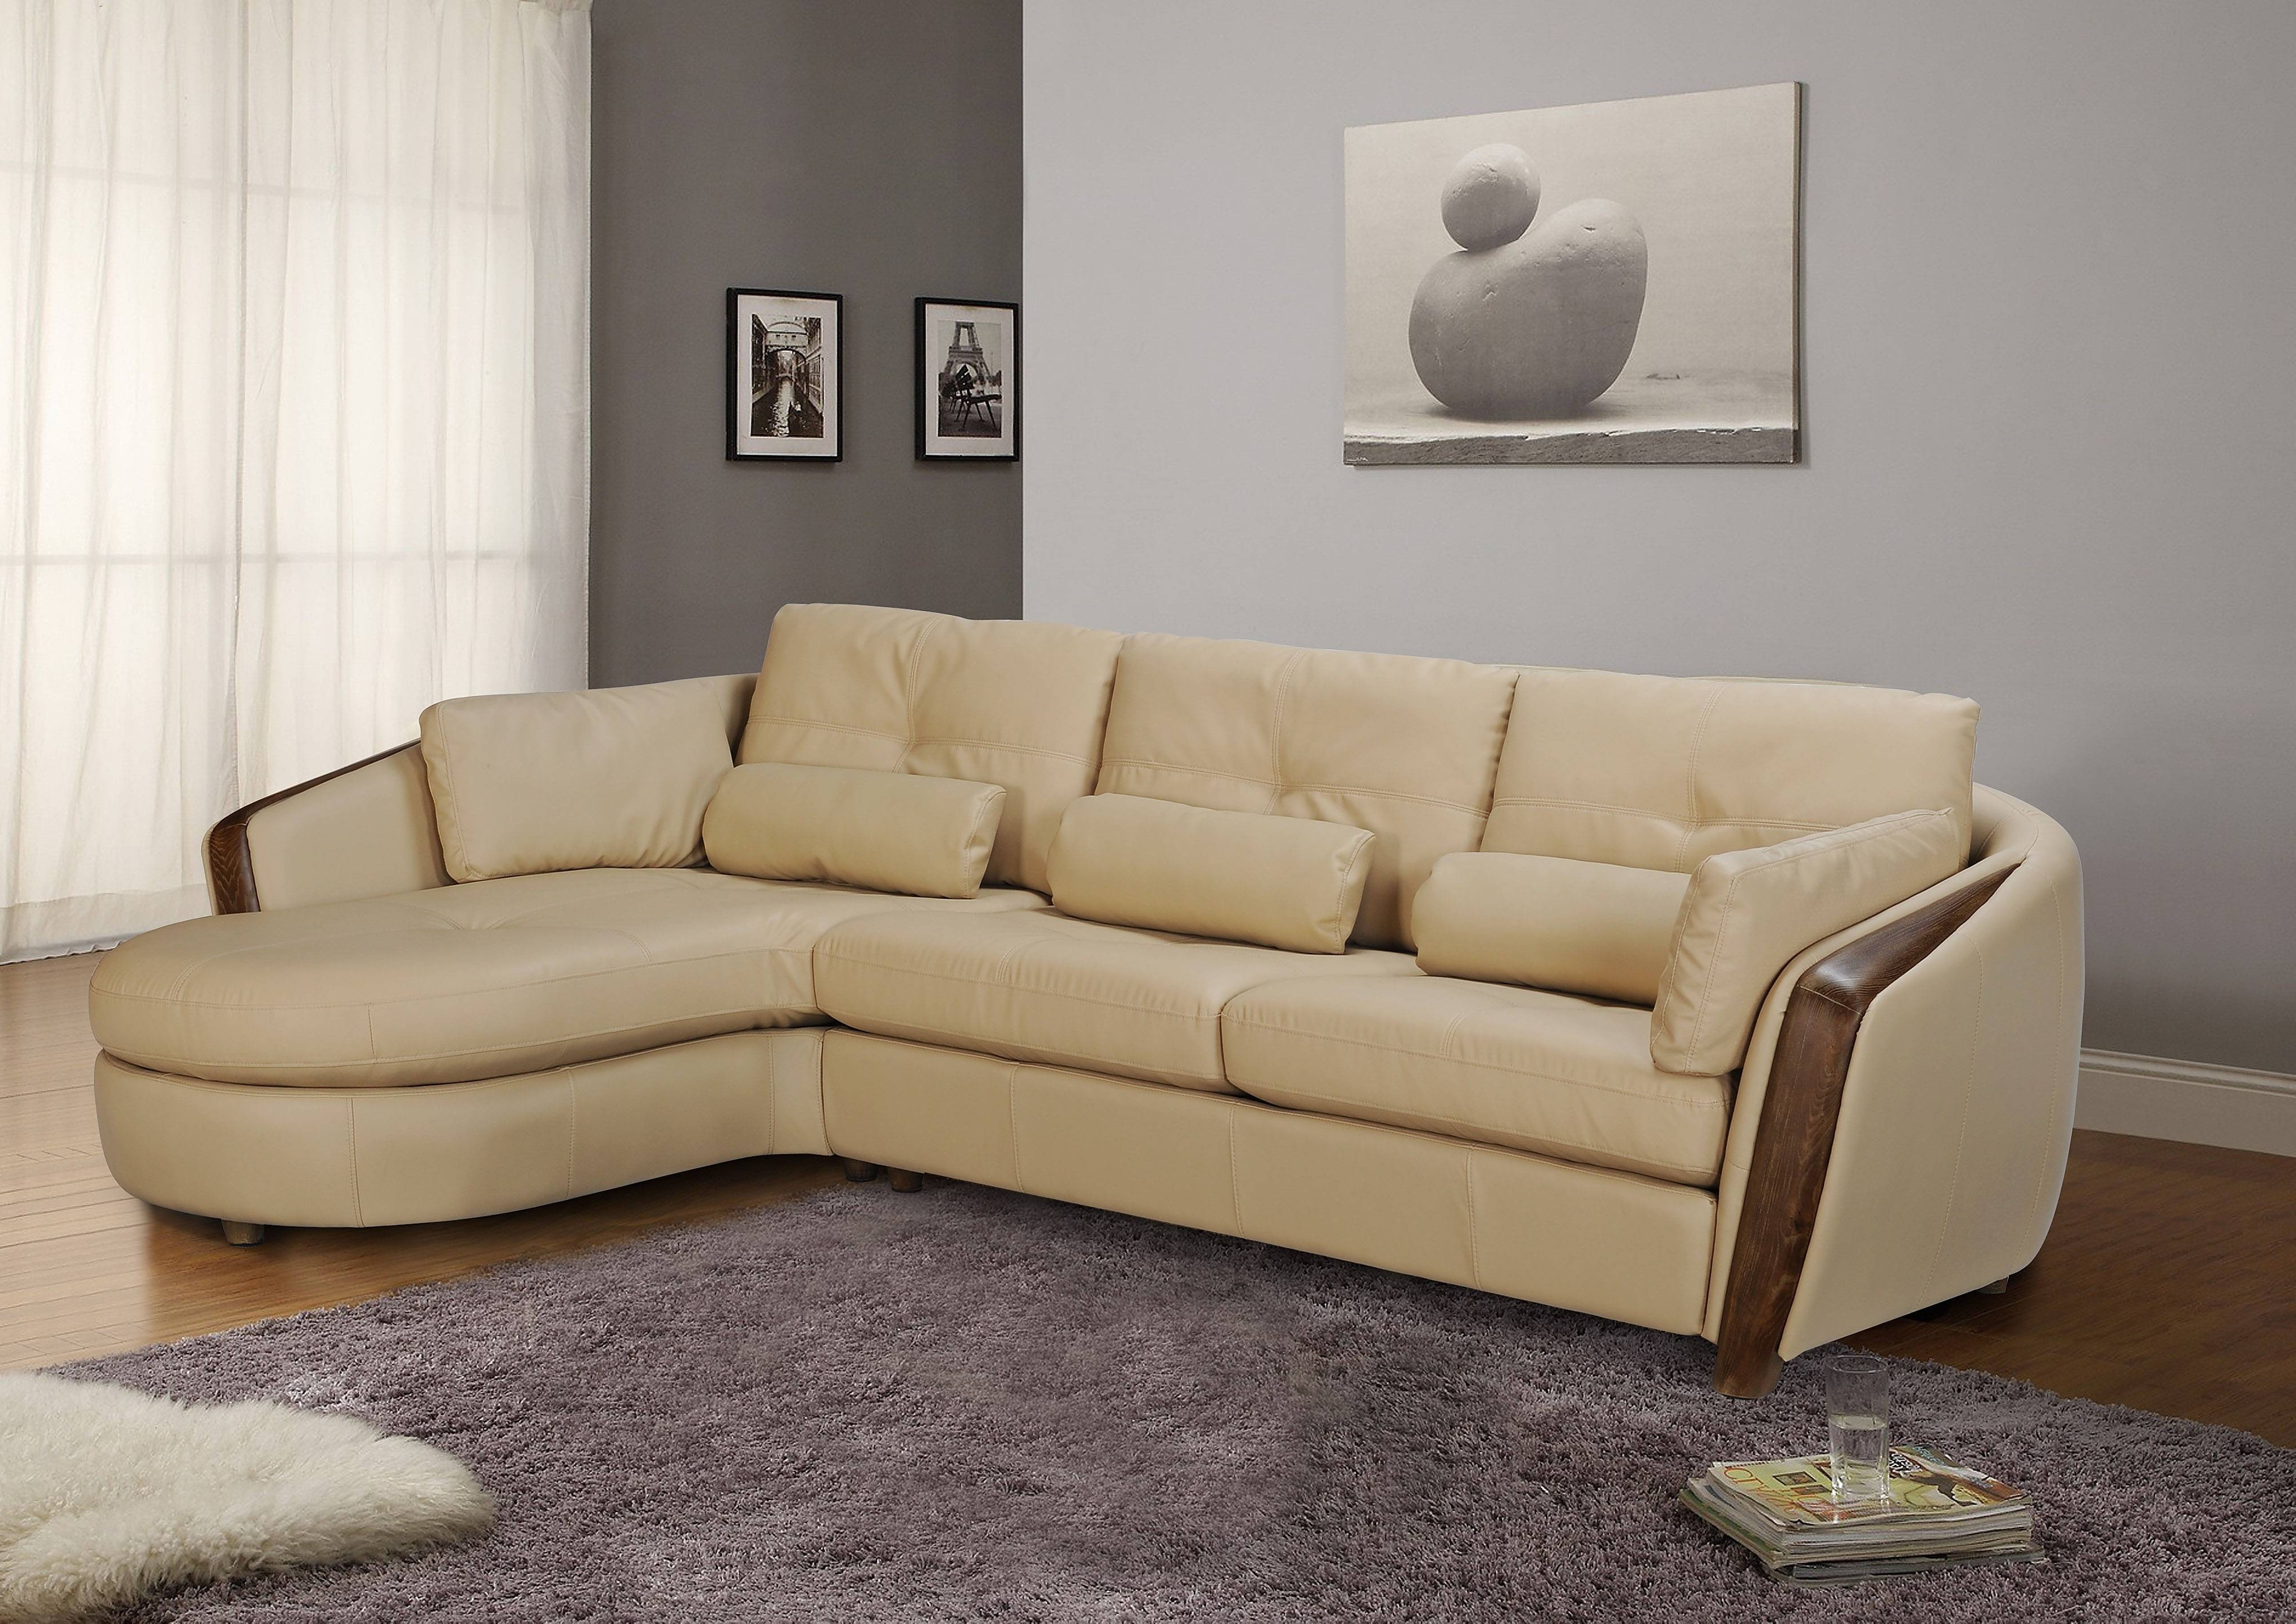 Taupe Bonded Leather Sectional Sofa With Ash Wood Accent Baltimore With Regard To Trendy Ontario Sectional Sofas (View 19 of 20)